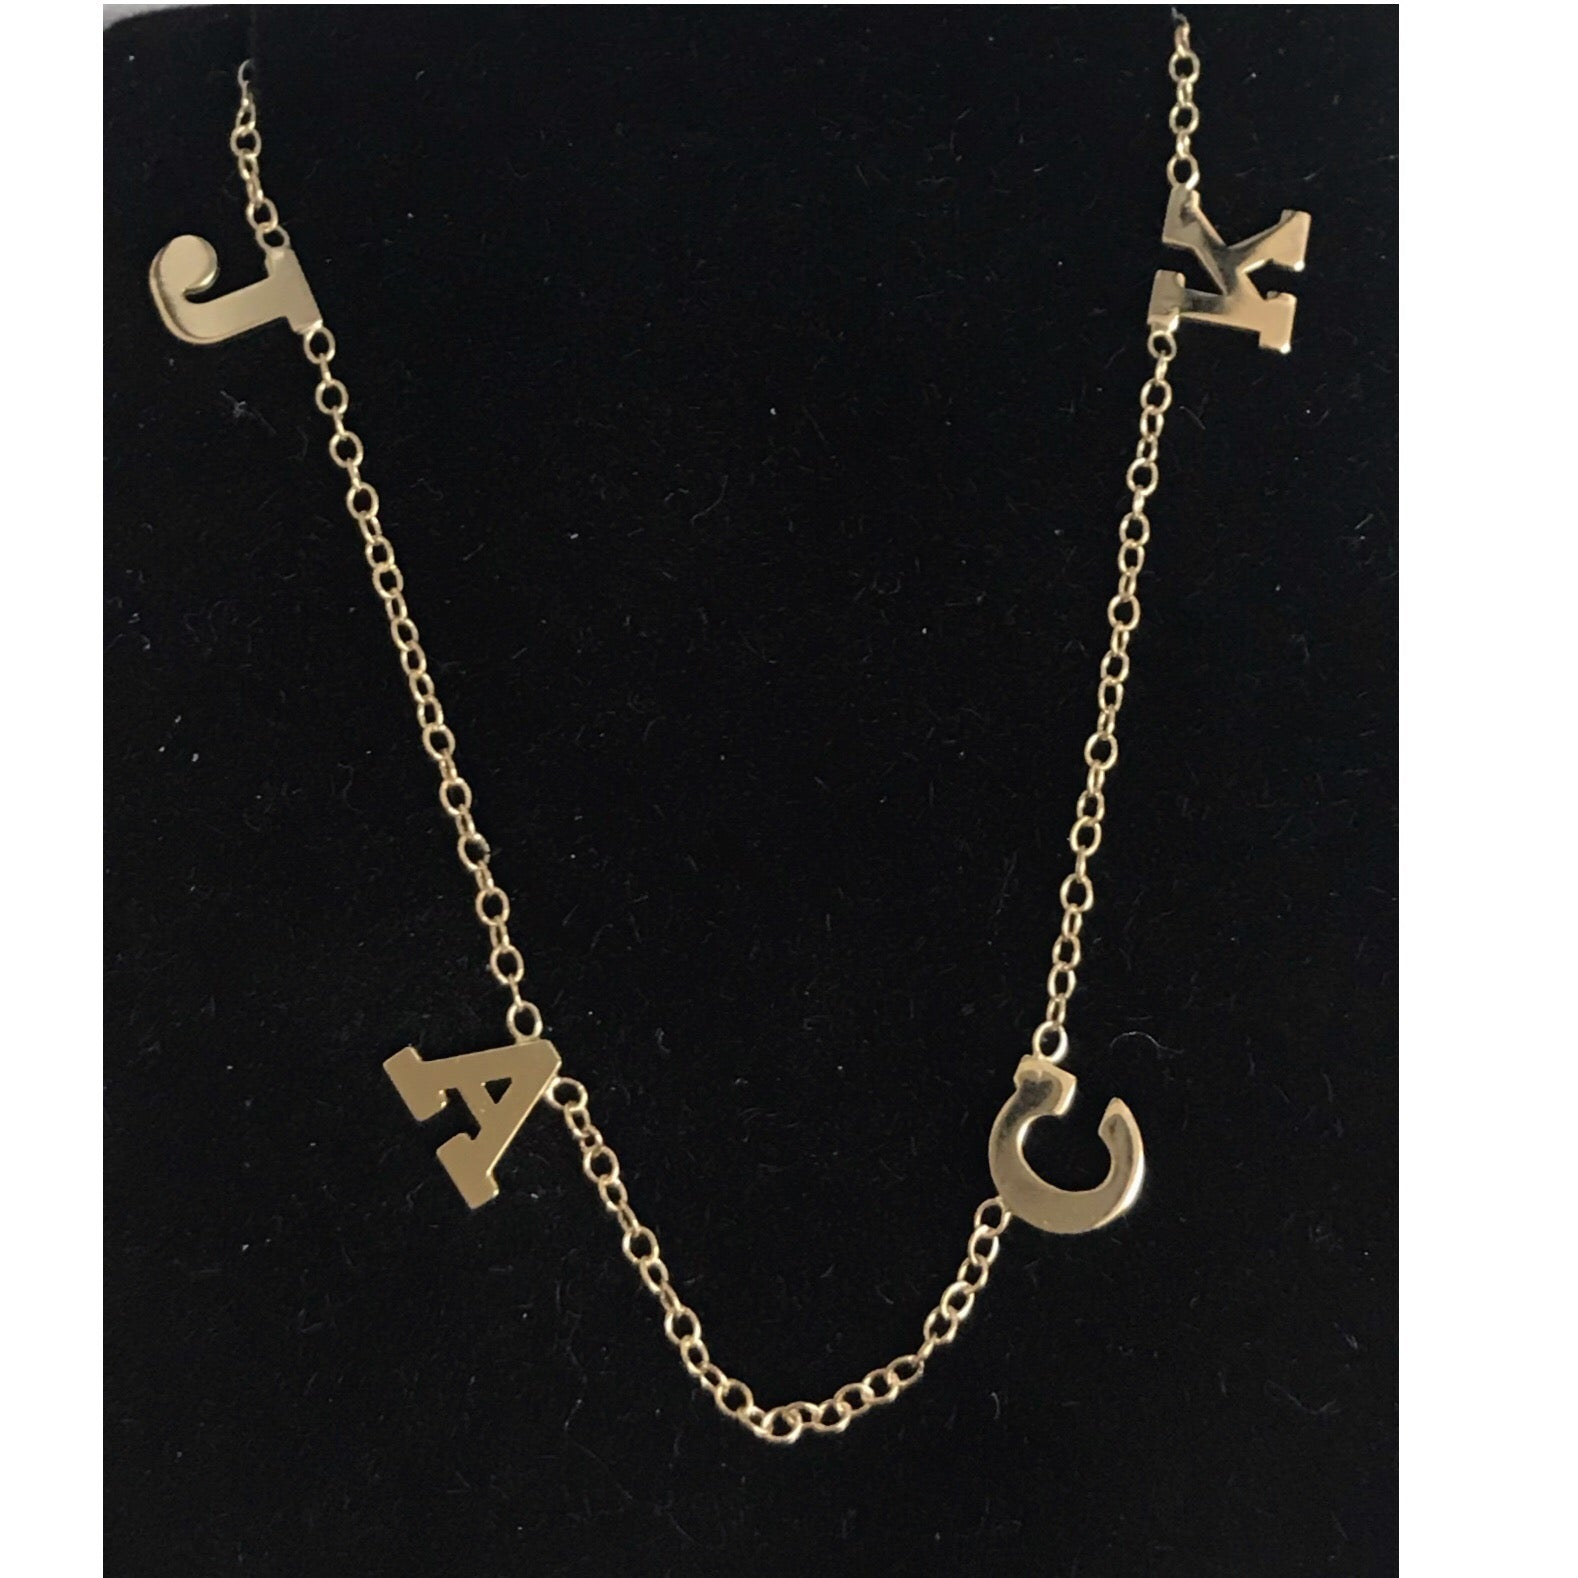 14K Gold Four Initial Necklace